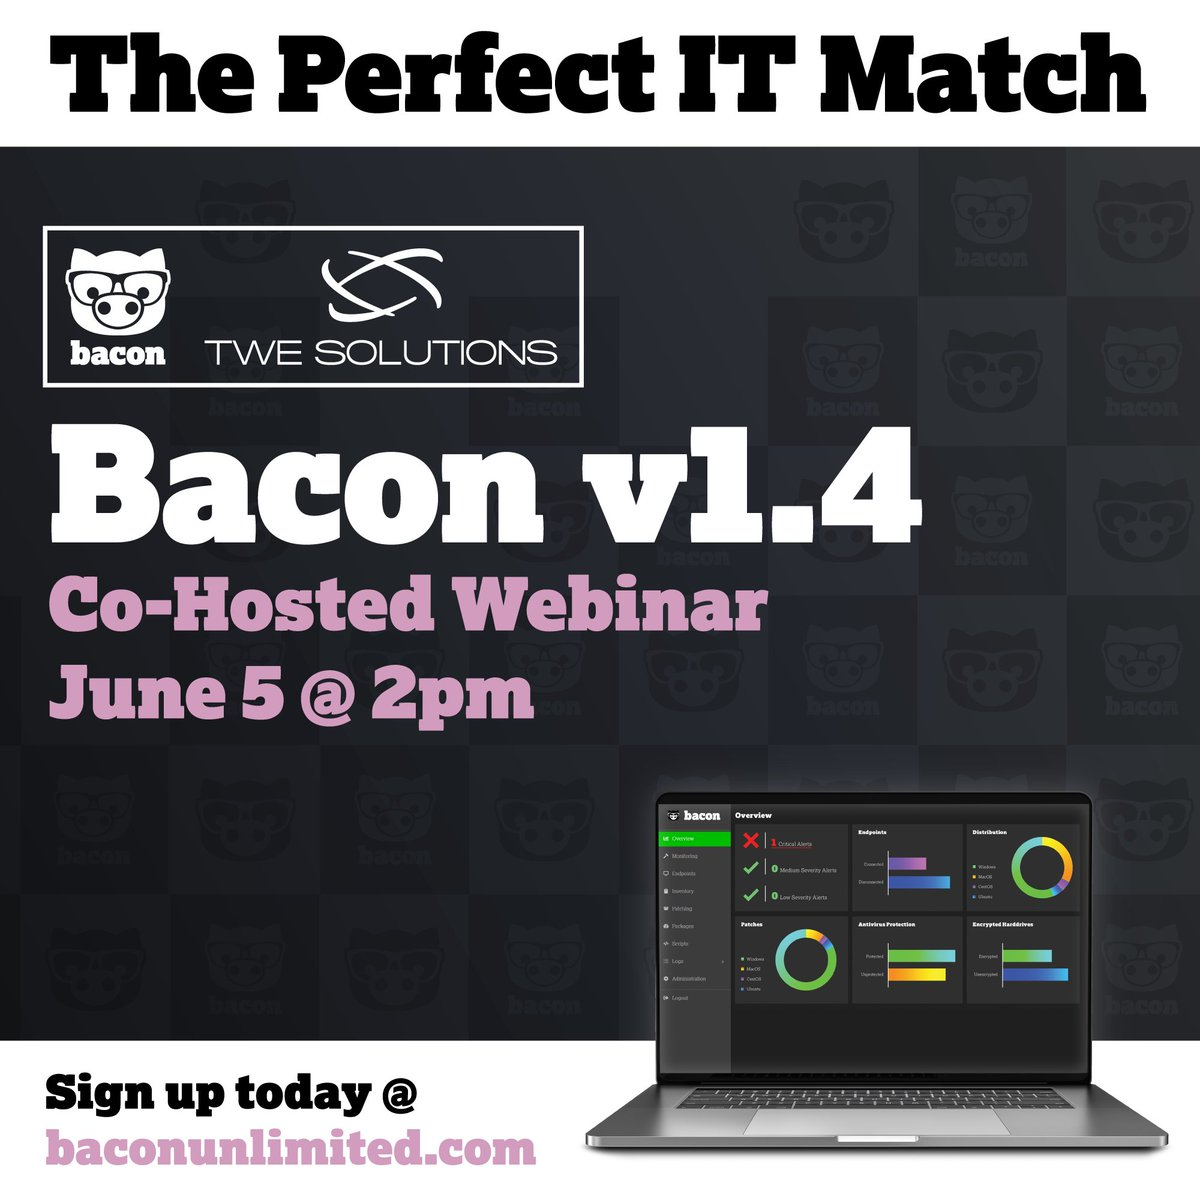 Bacon is proud to announce our newest partner—#TWESolutions is co-hosting Friday's #webinar!  Register now at https://baconunlimited.com/  #baconunlimited #getbacon #bacon #itsupport #itservices #itsoftware #tech #technology #innovation #windows #mac #linux #webinar #gotowebinarpic.twitter.com/Ow8YxqeuJG